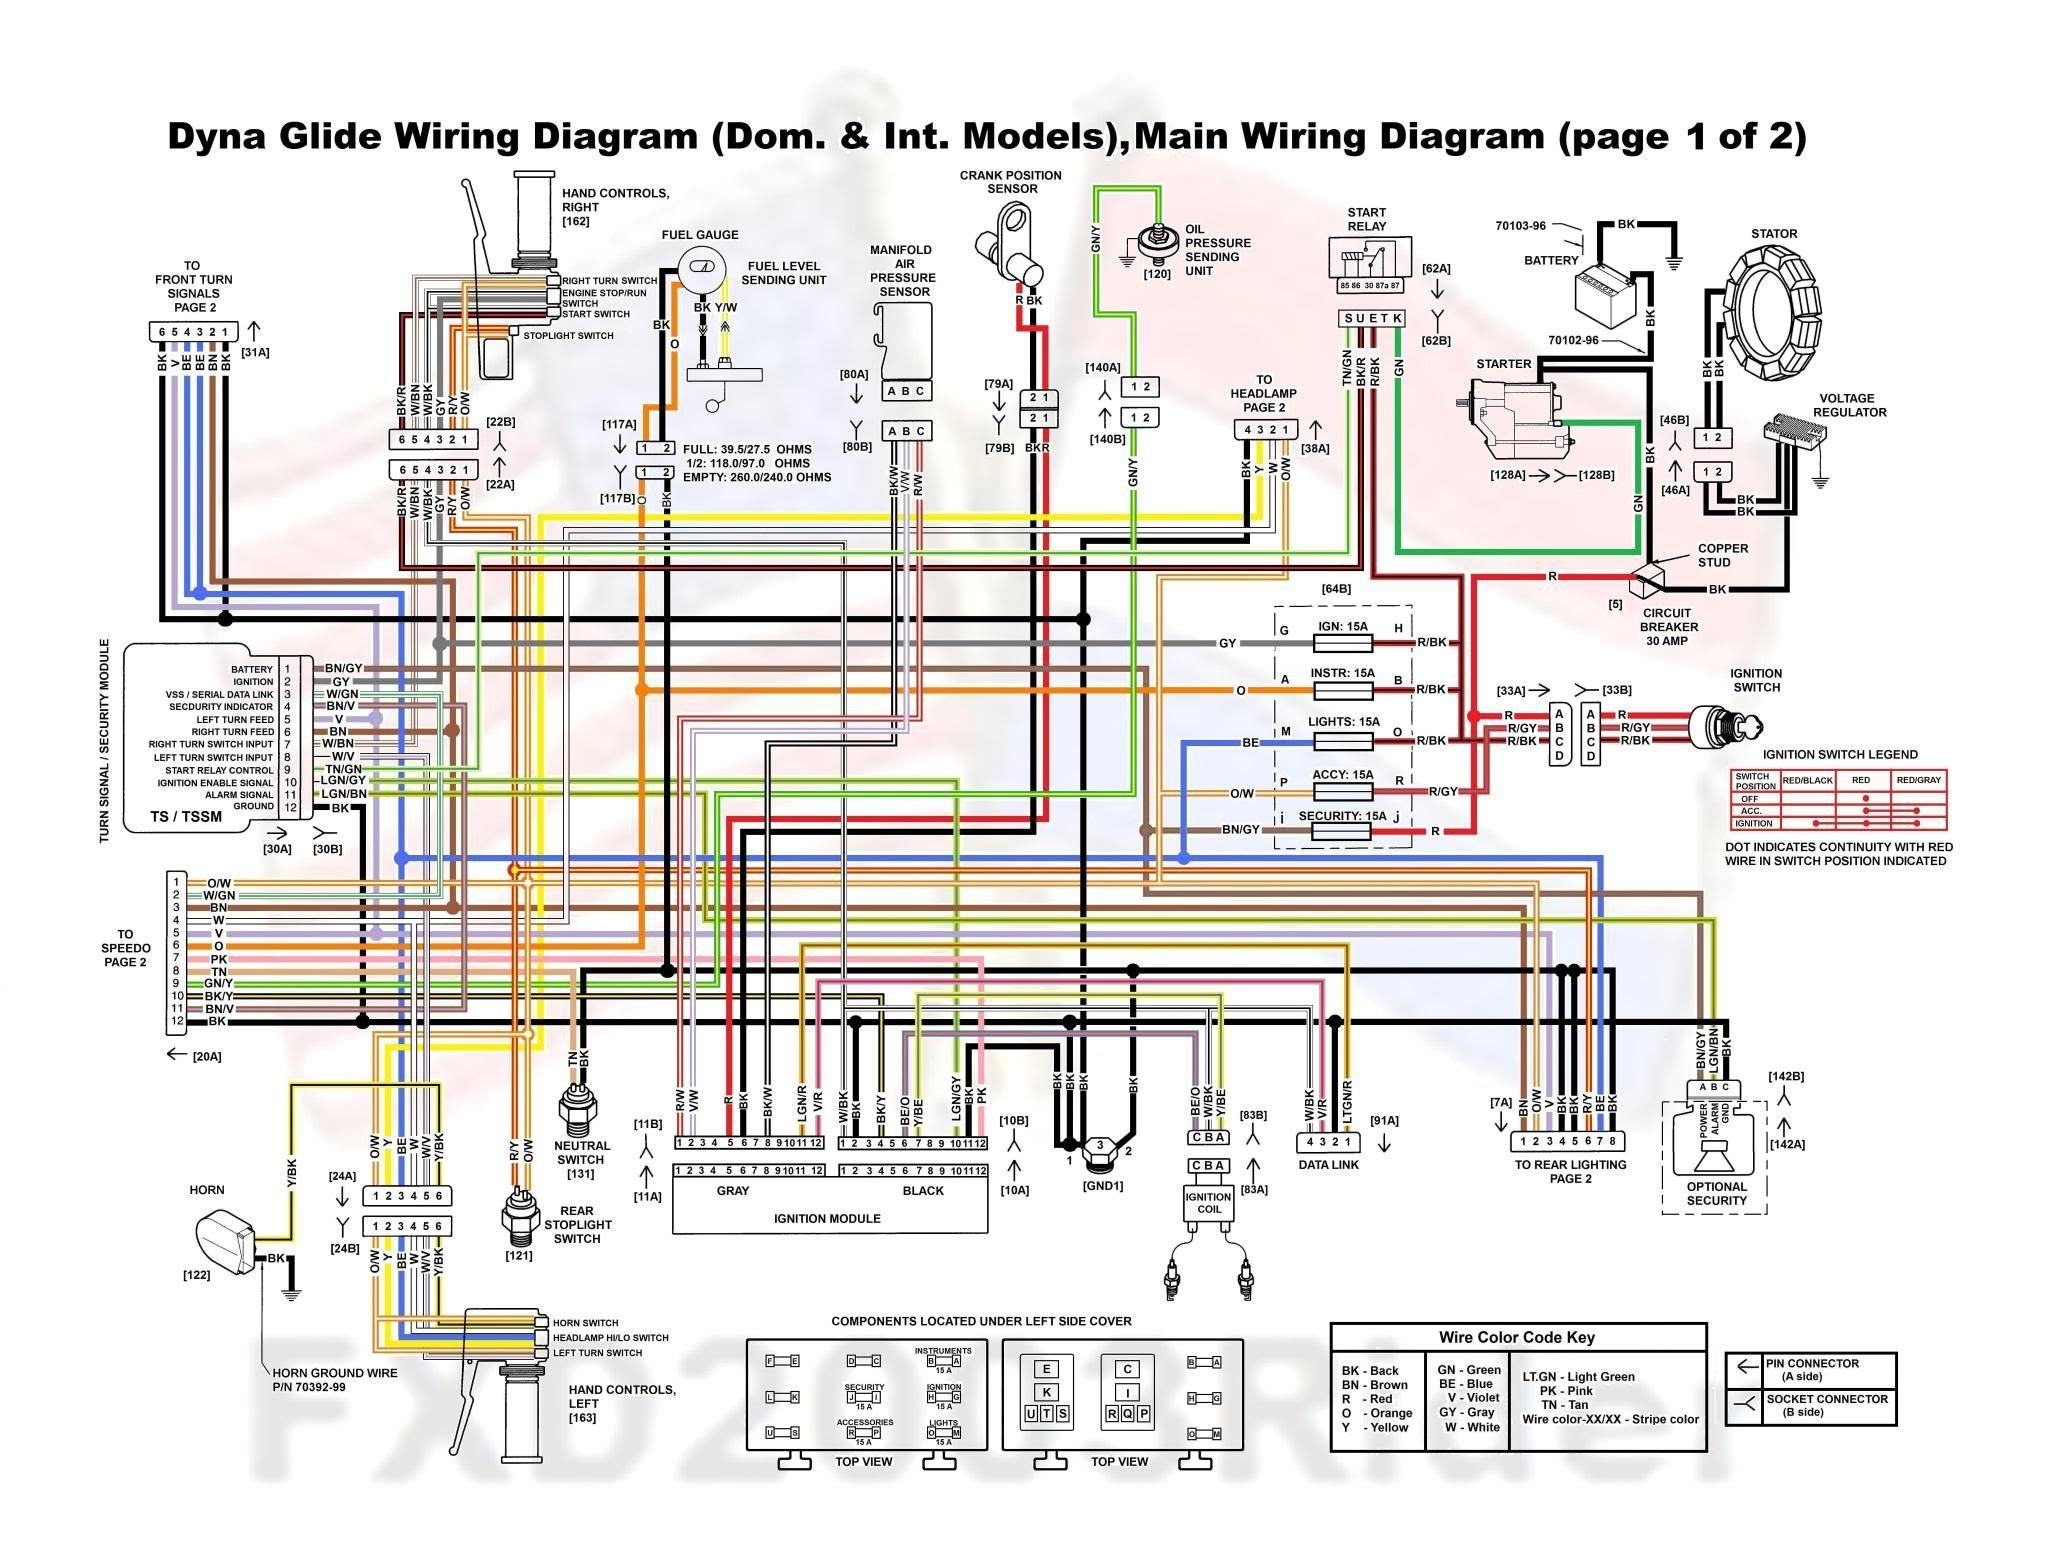 2003 harley wiring diagram - wiring diagram hear-alternator-a - hear- alternator-a.lasuiteclub.it  lasuiteclub.it